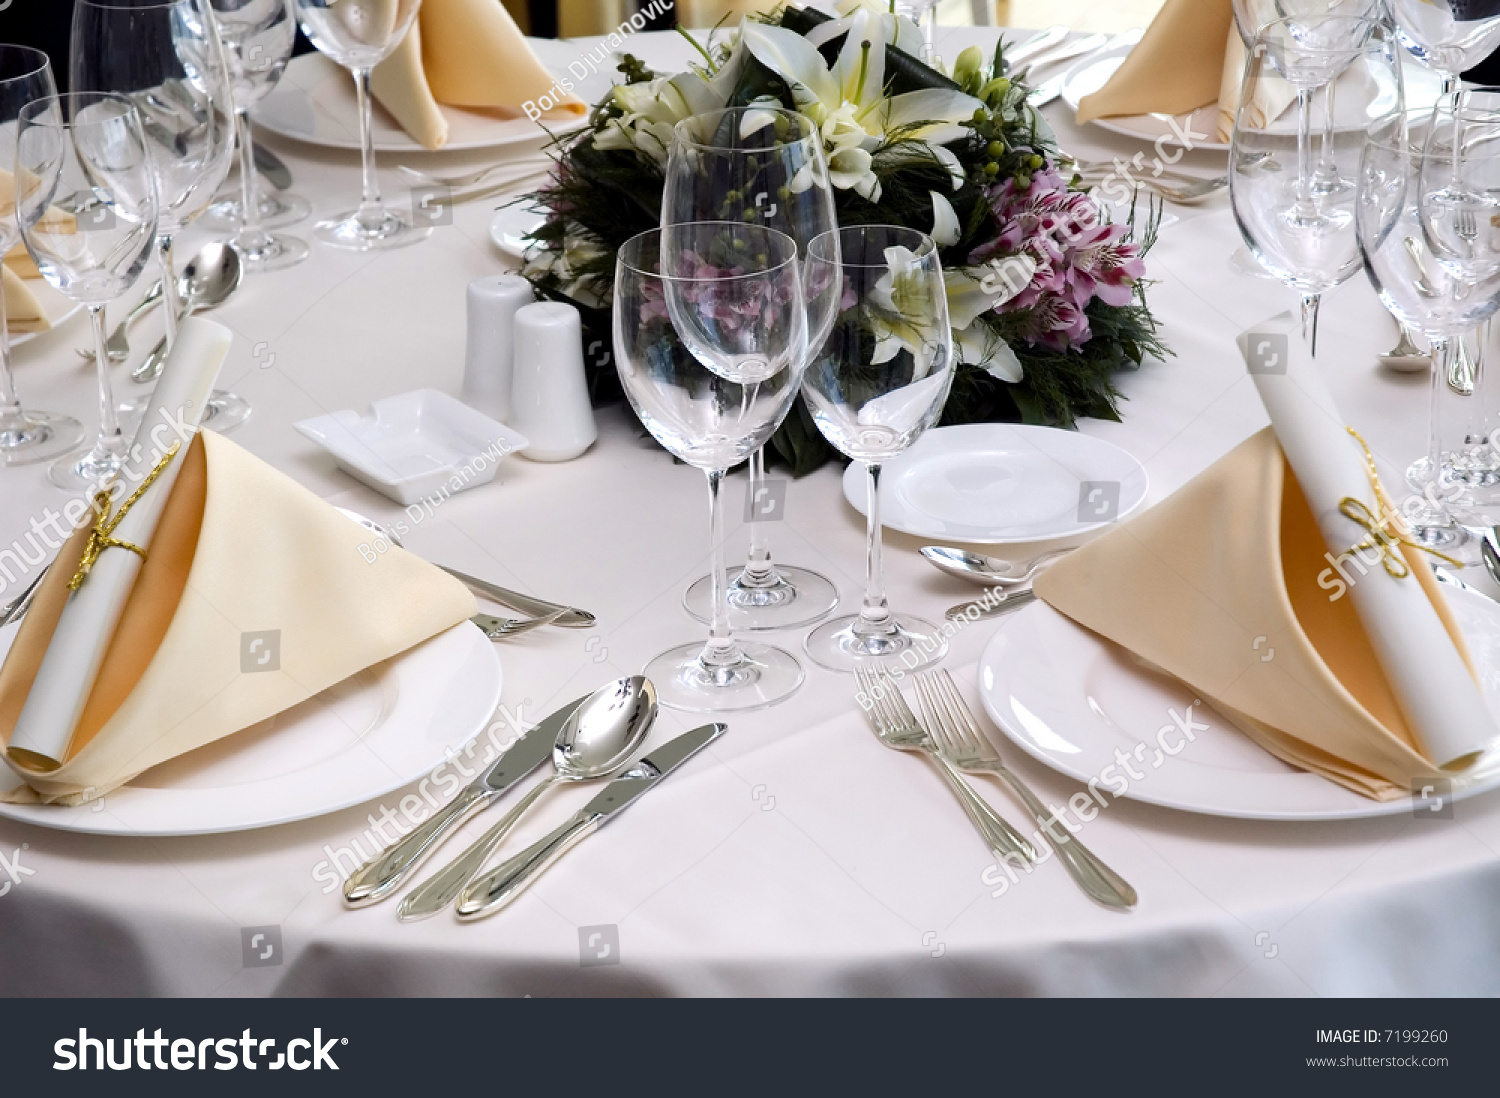 Table Preparing For After Wedding Ceremony Diner In Luxury Hotels Restaurant